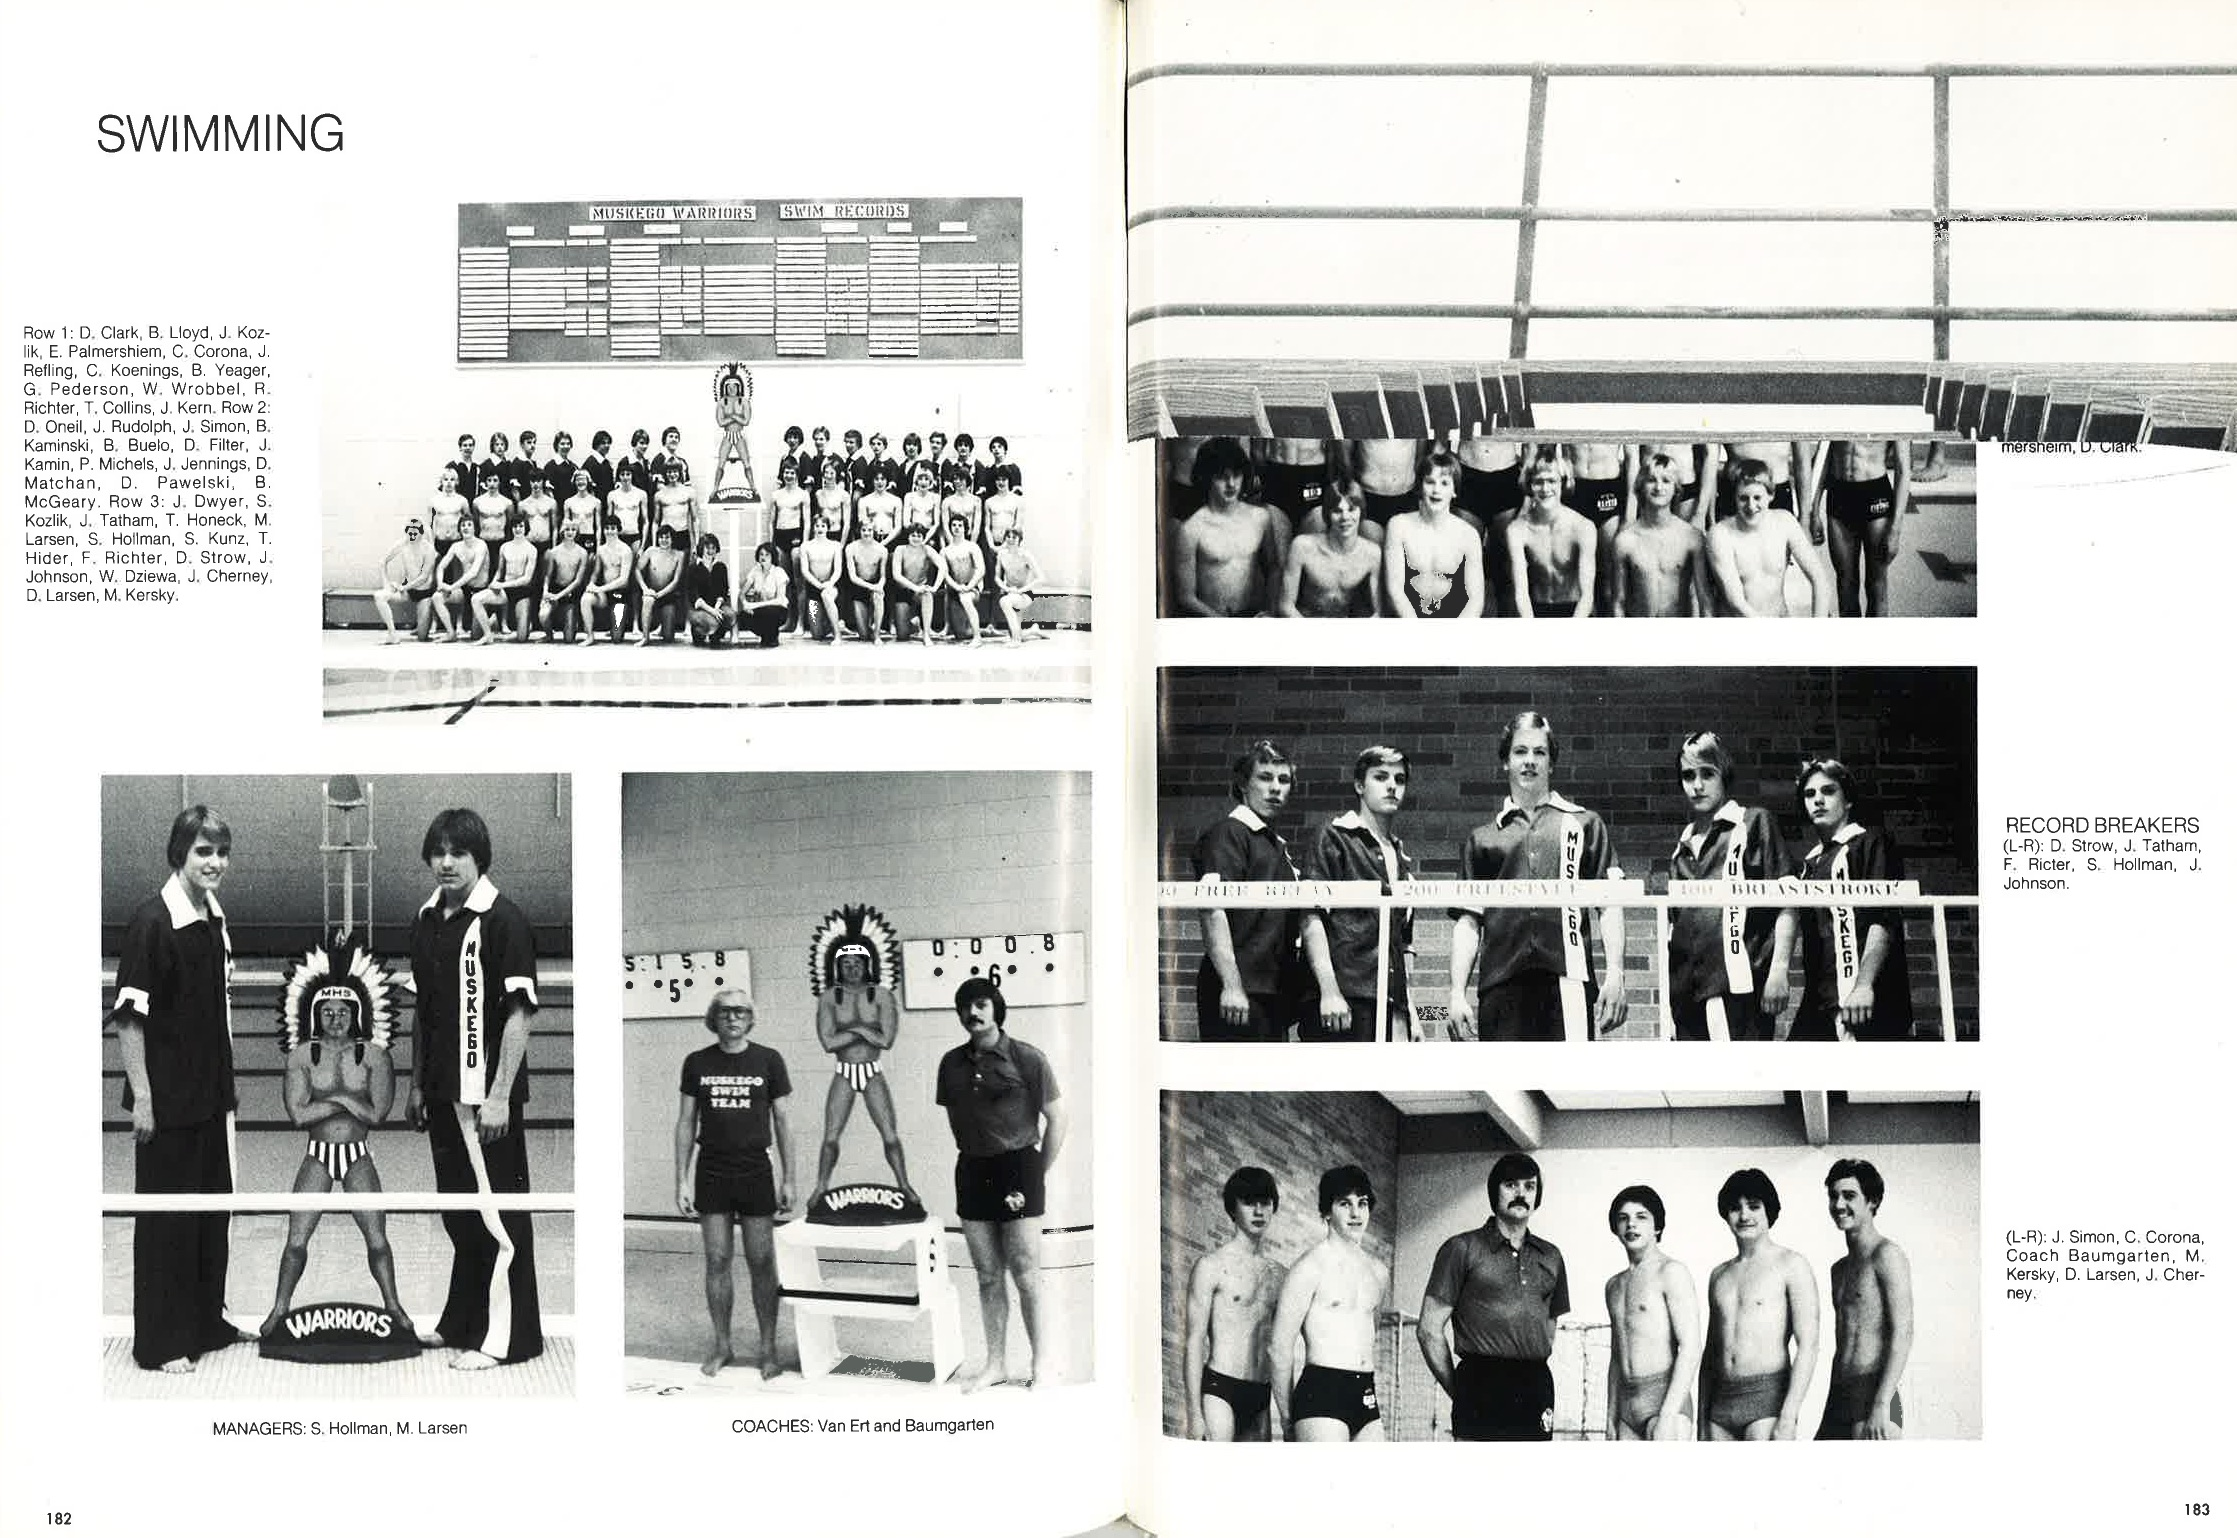 1980_Yearbook_182.jpg